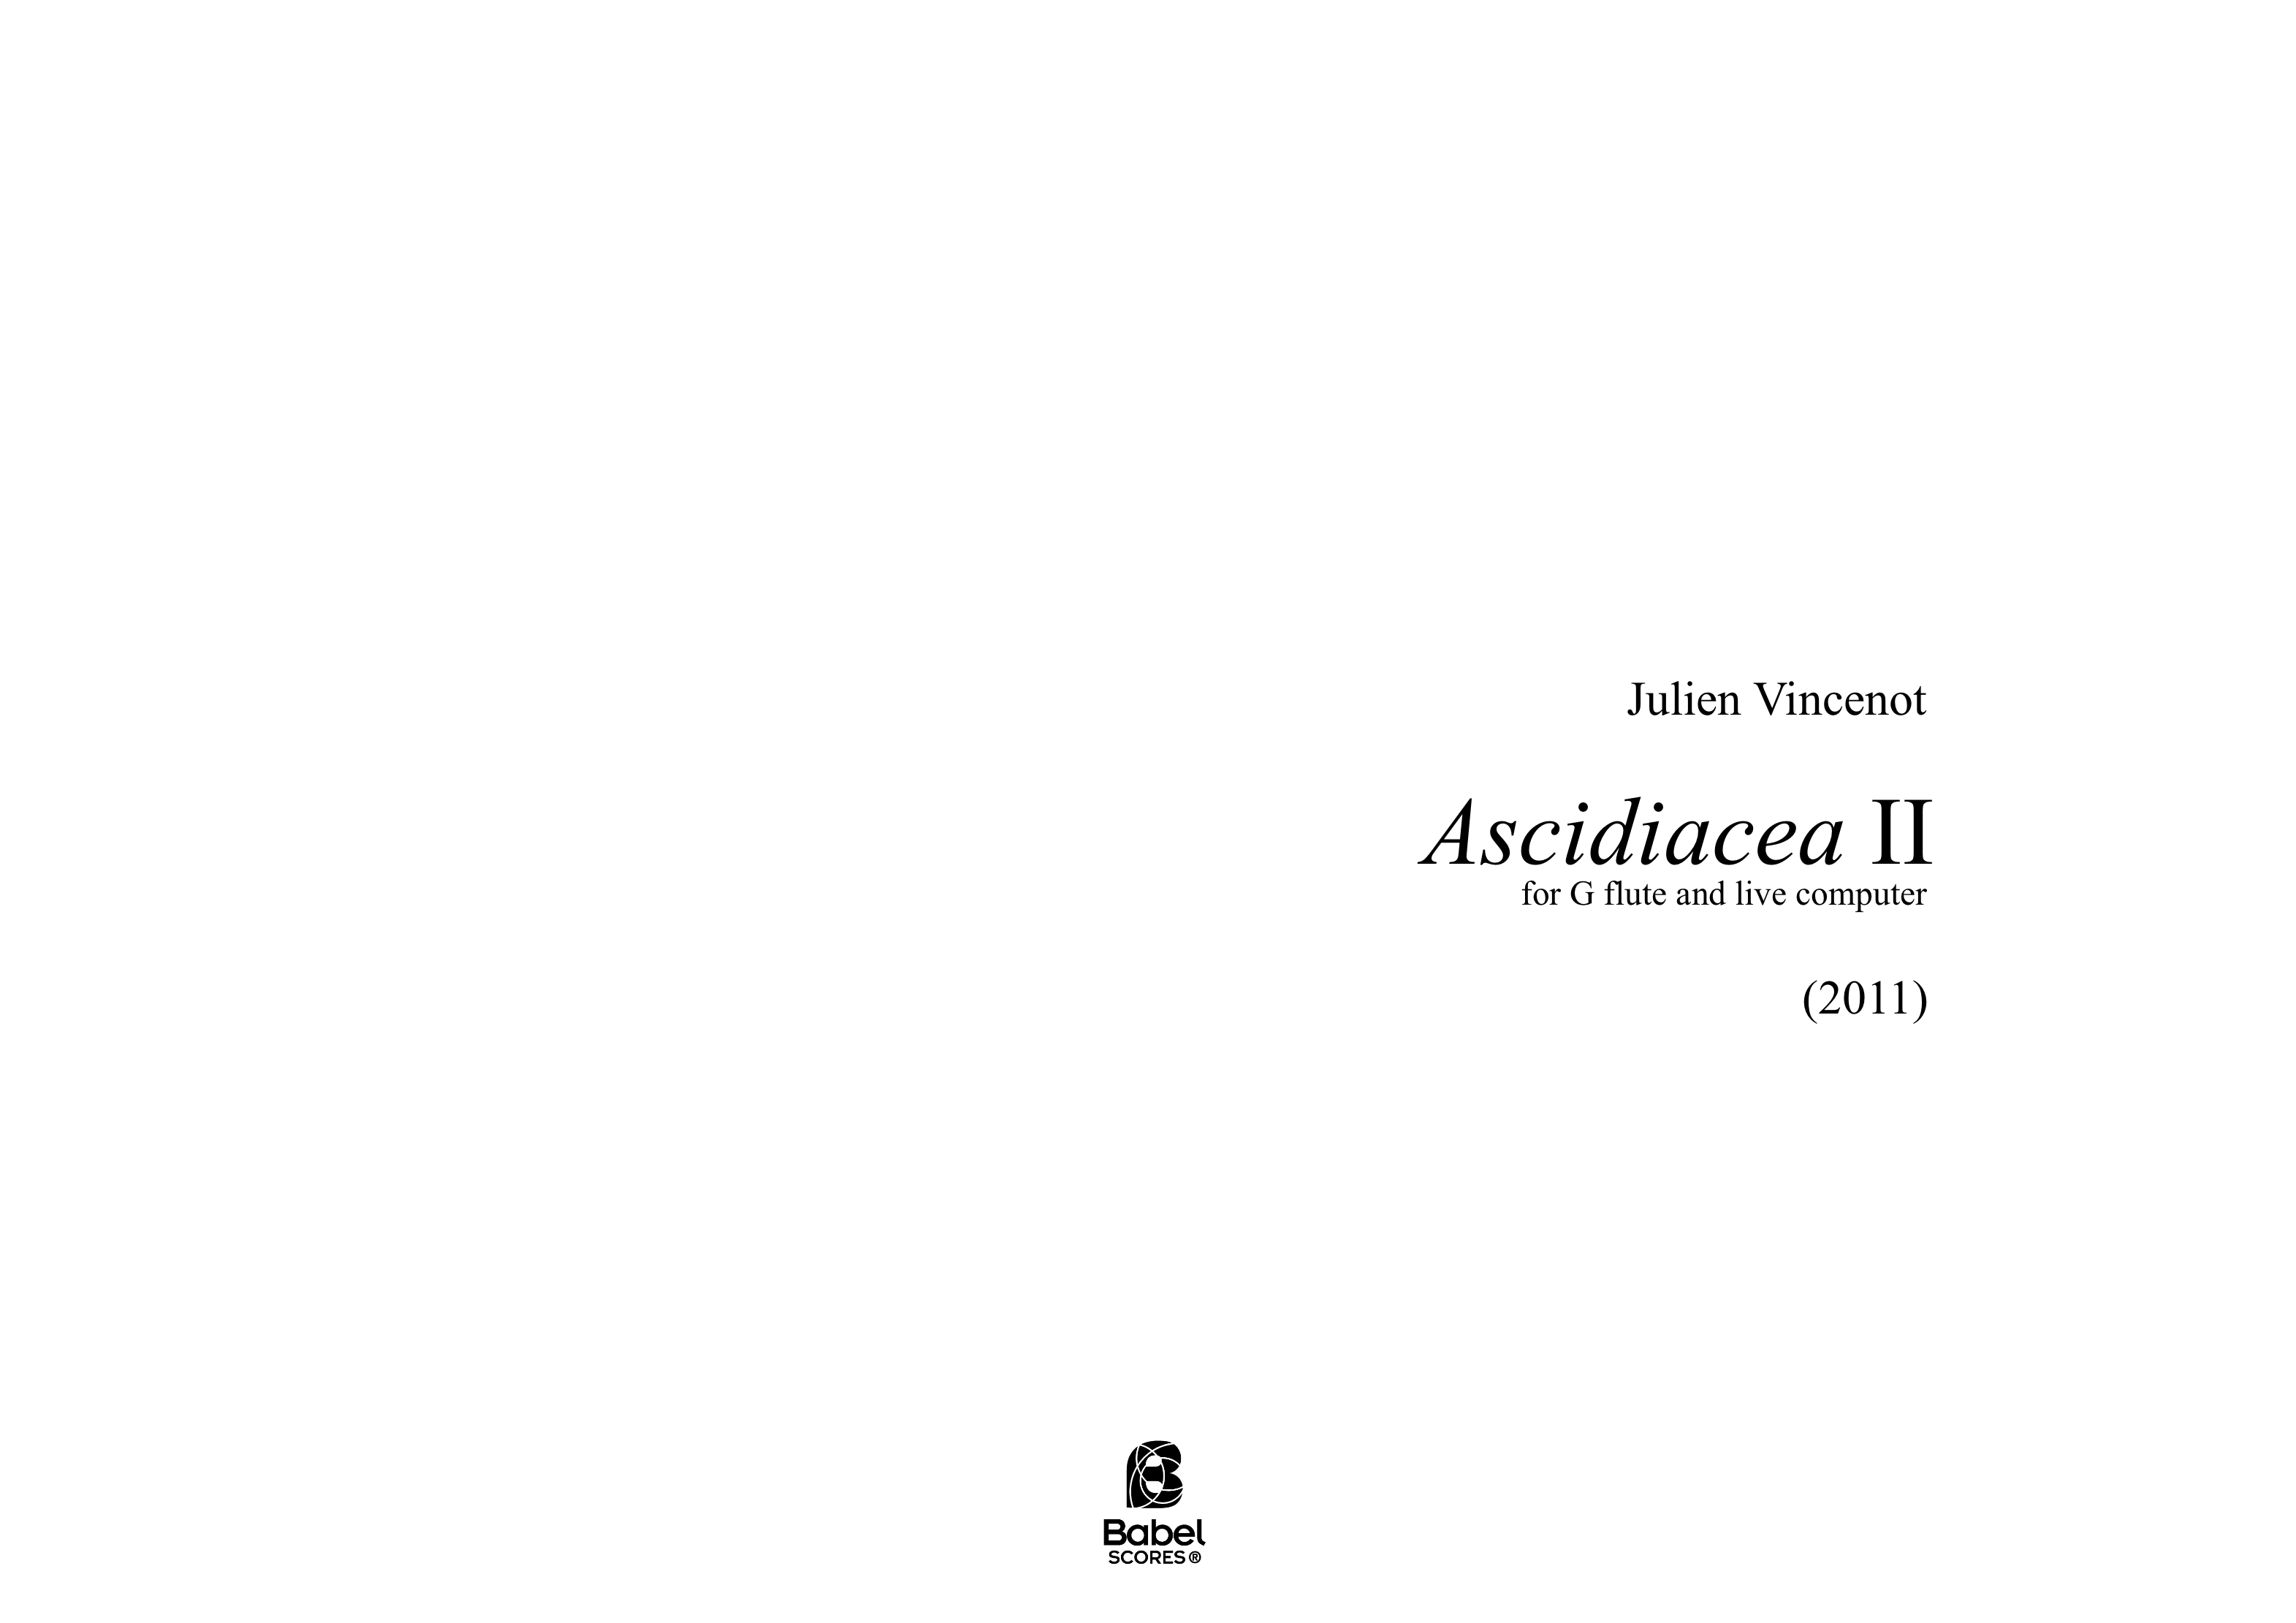 Ascidiacea II for alto flute and live computer A3z